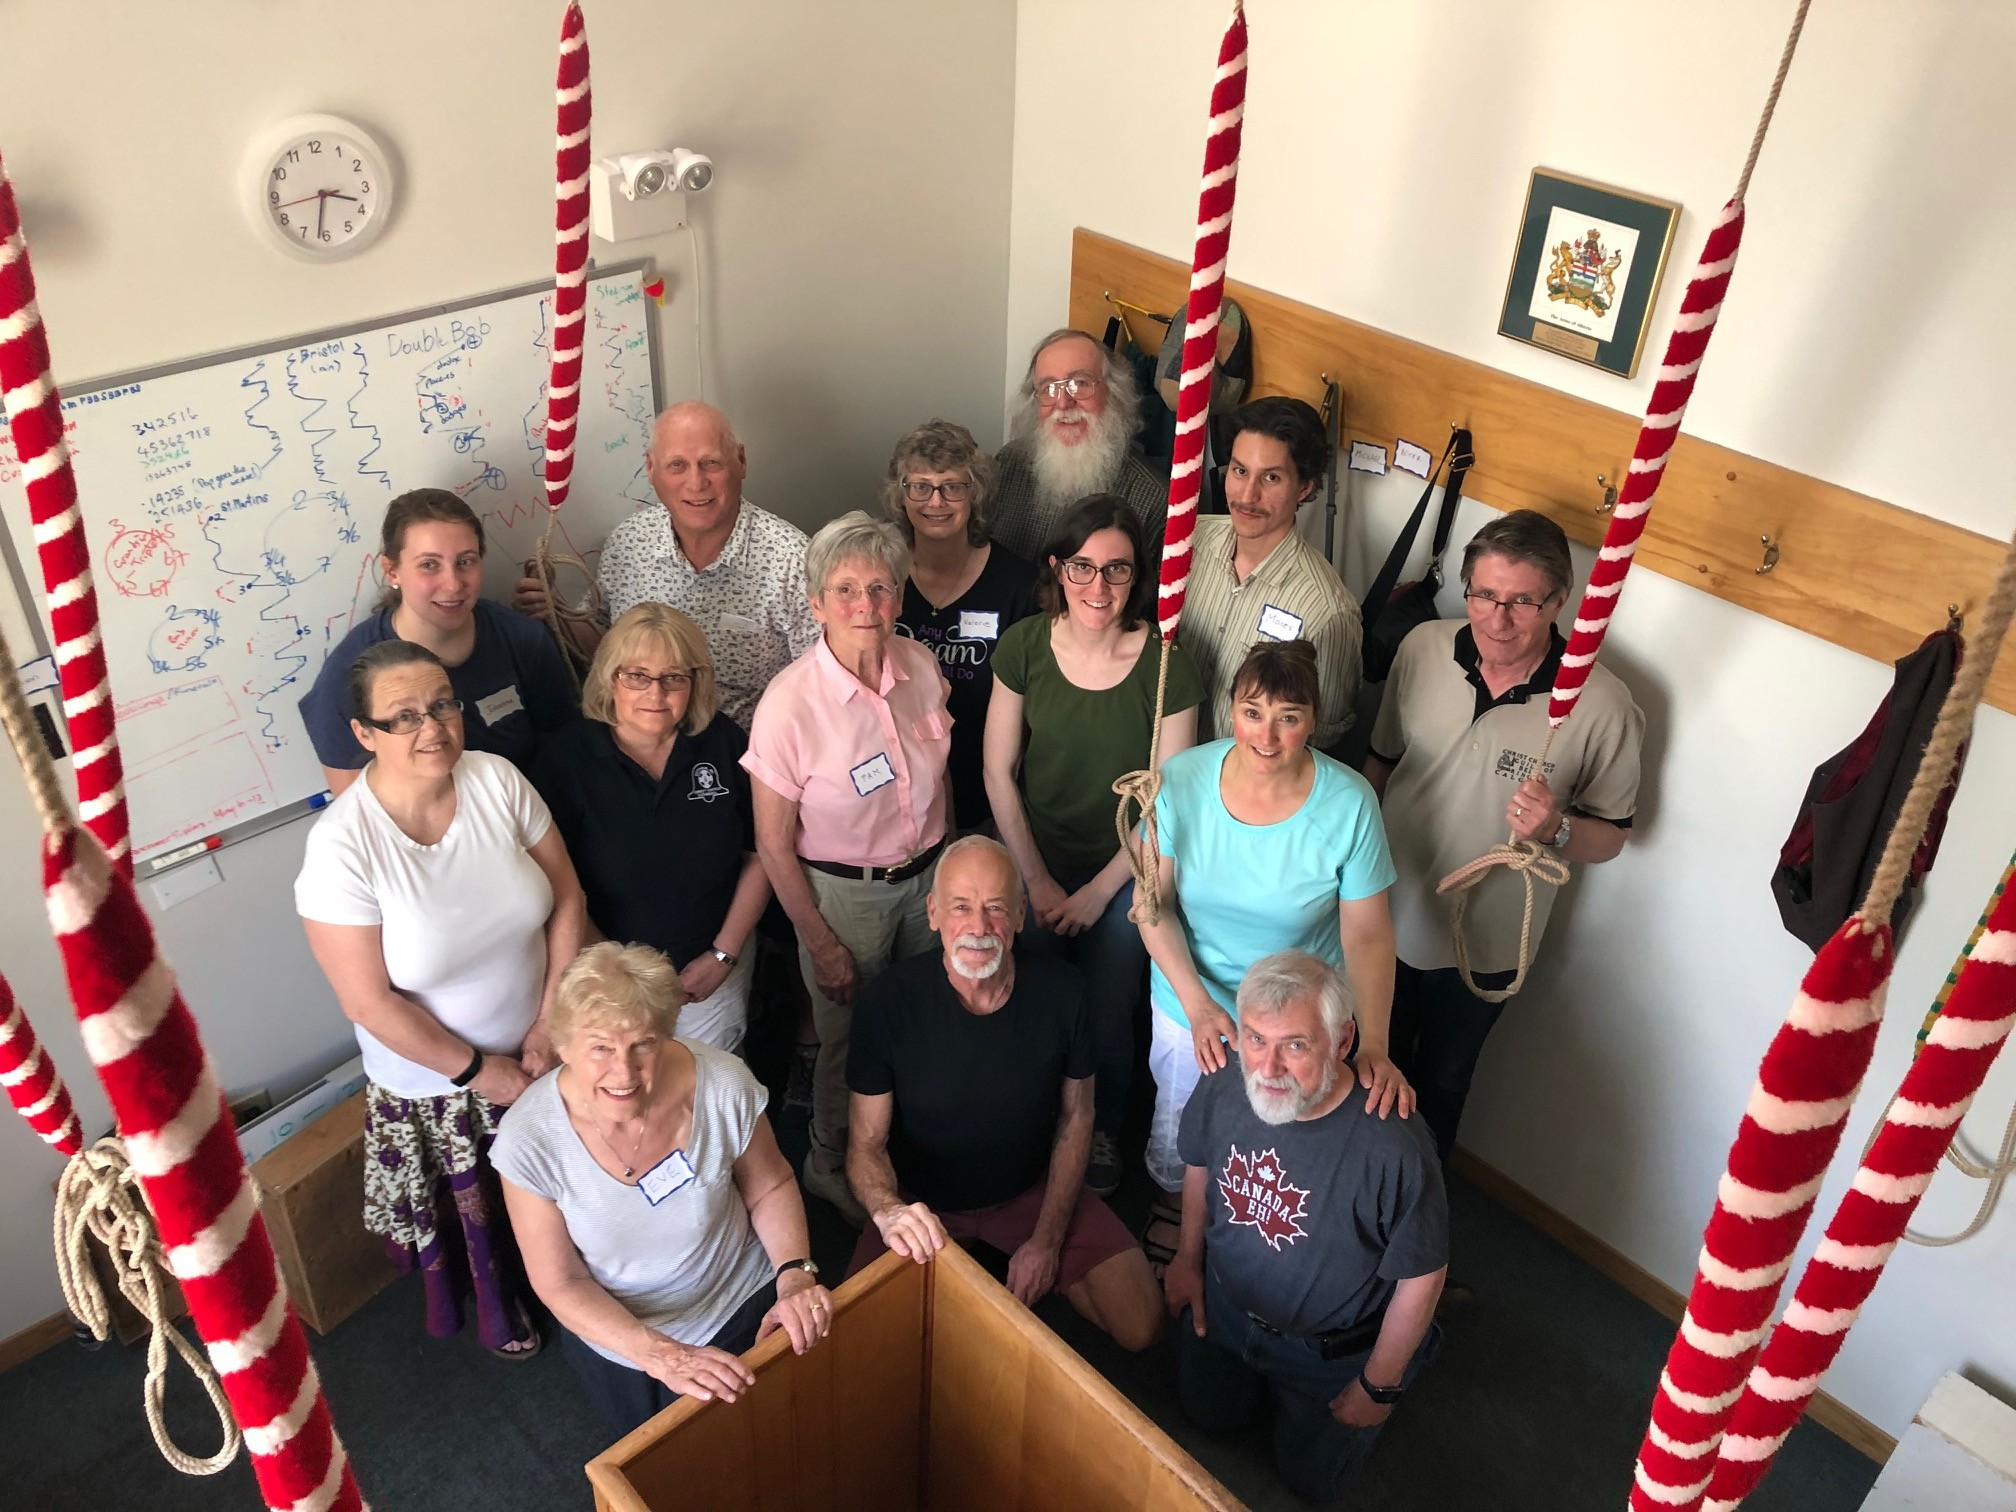 A group of about a dozen ringers of various ages in a bell tower, standing and facing up at the camera.